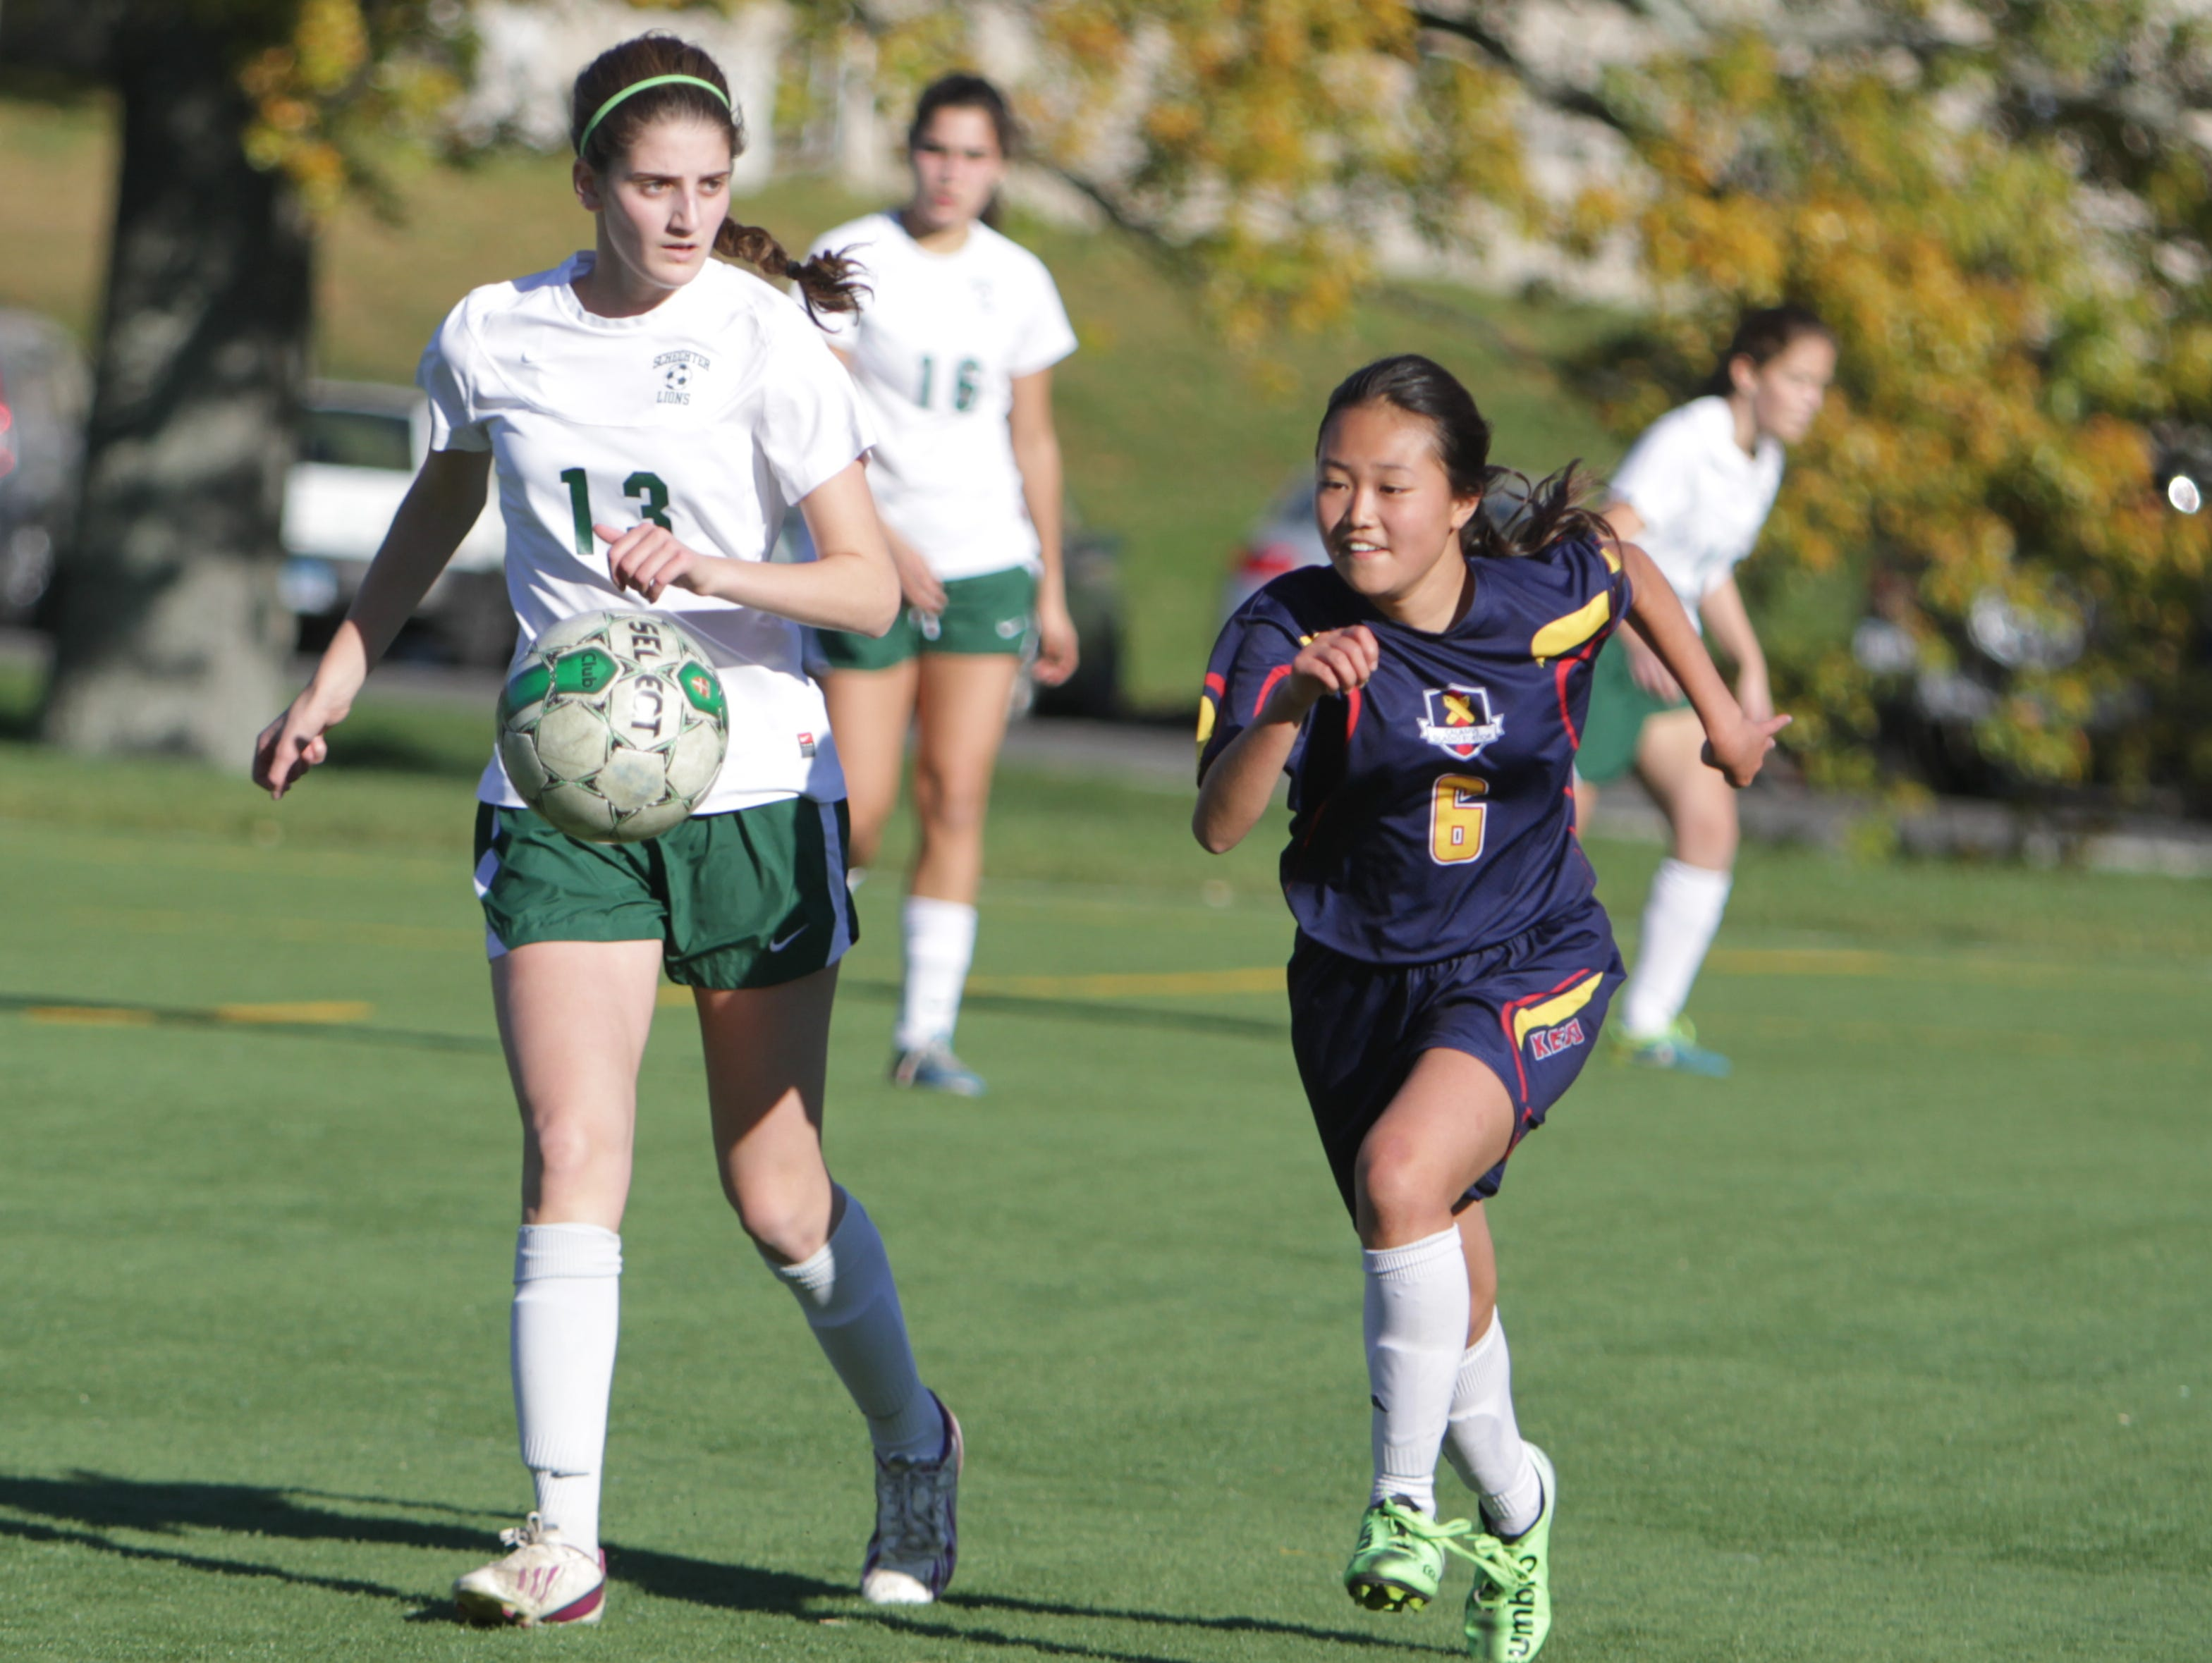 Solomon Schechter's Lulu Wein (13) and Keio's Hinako Takei chase after the ball during a Section 1, Class C quarterfinal game at Keio Academy on Monday, October 26th, 2015. Solomon Schechter won 9-2.